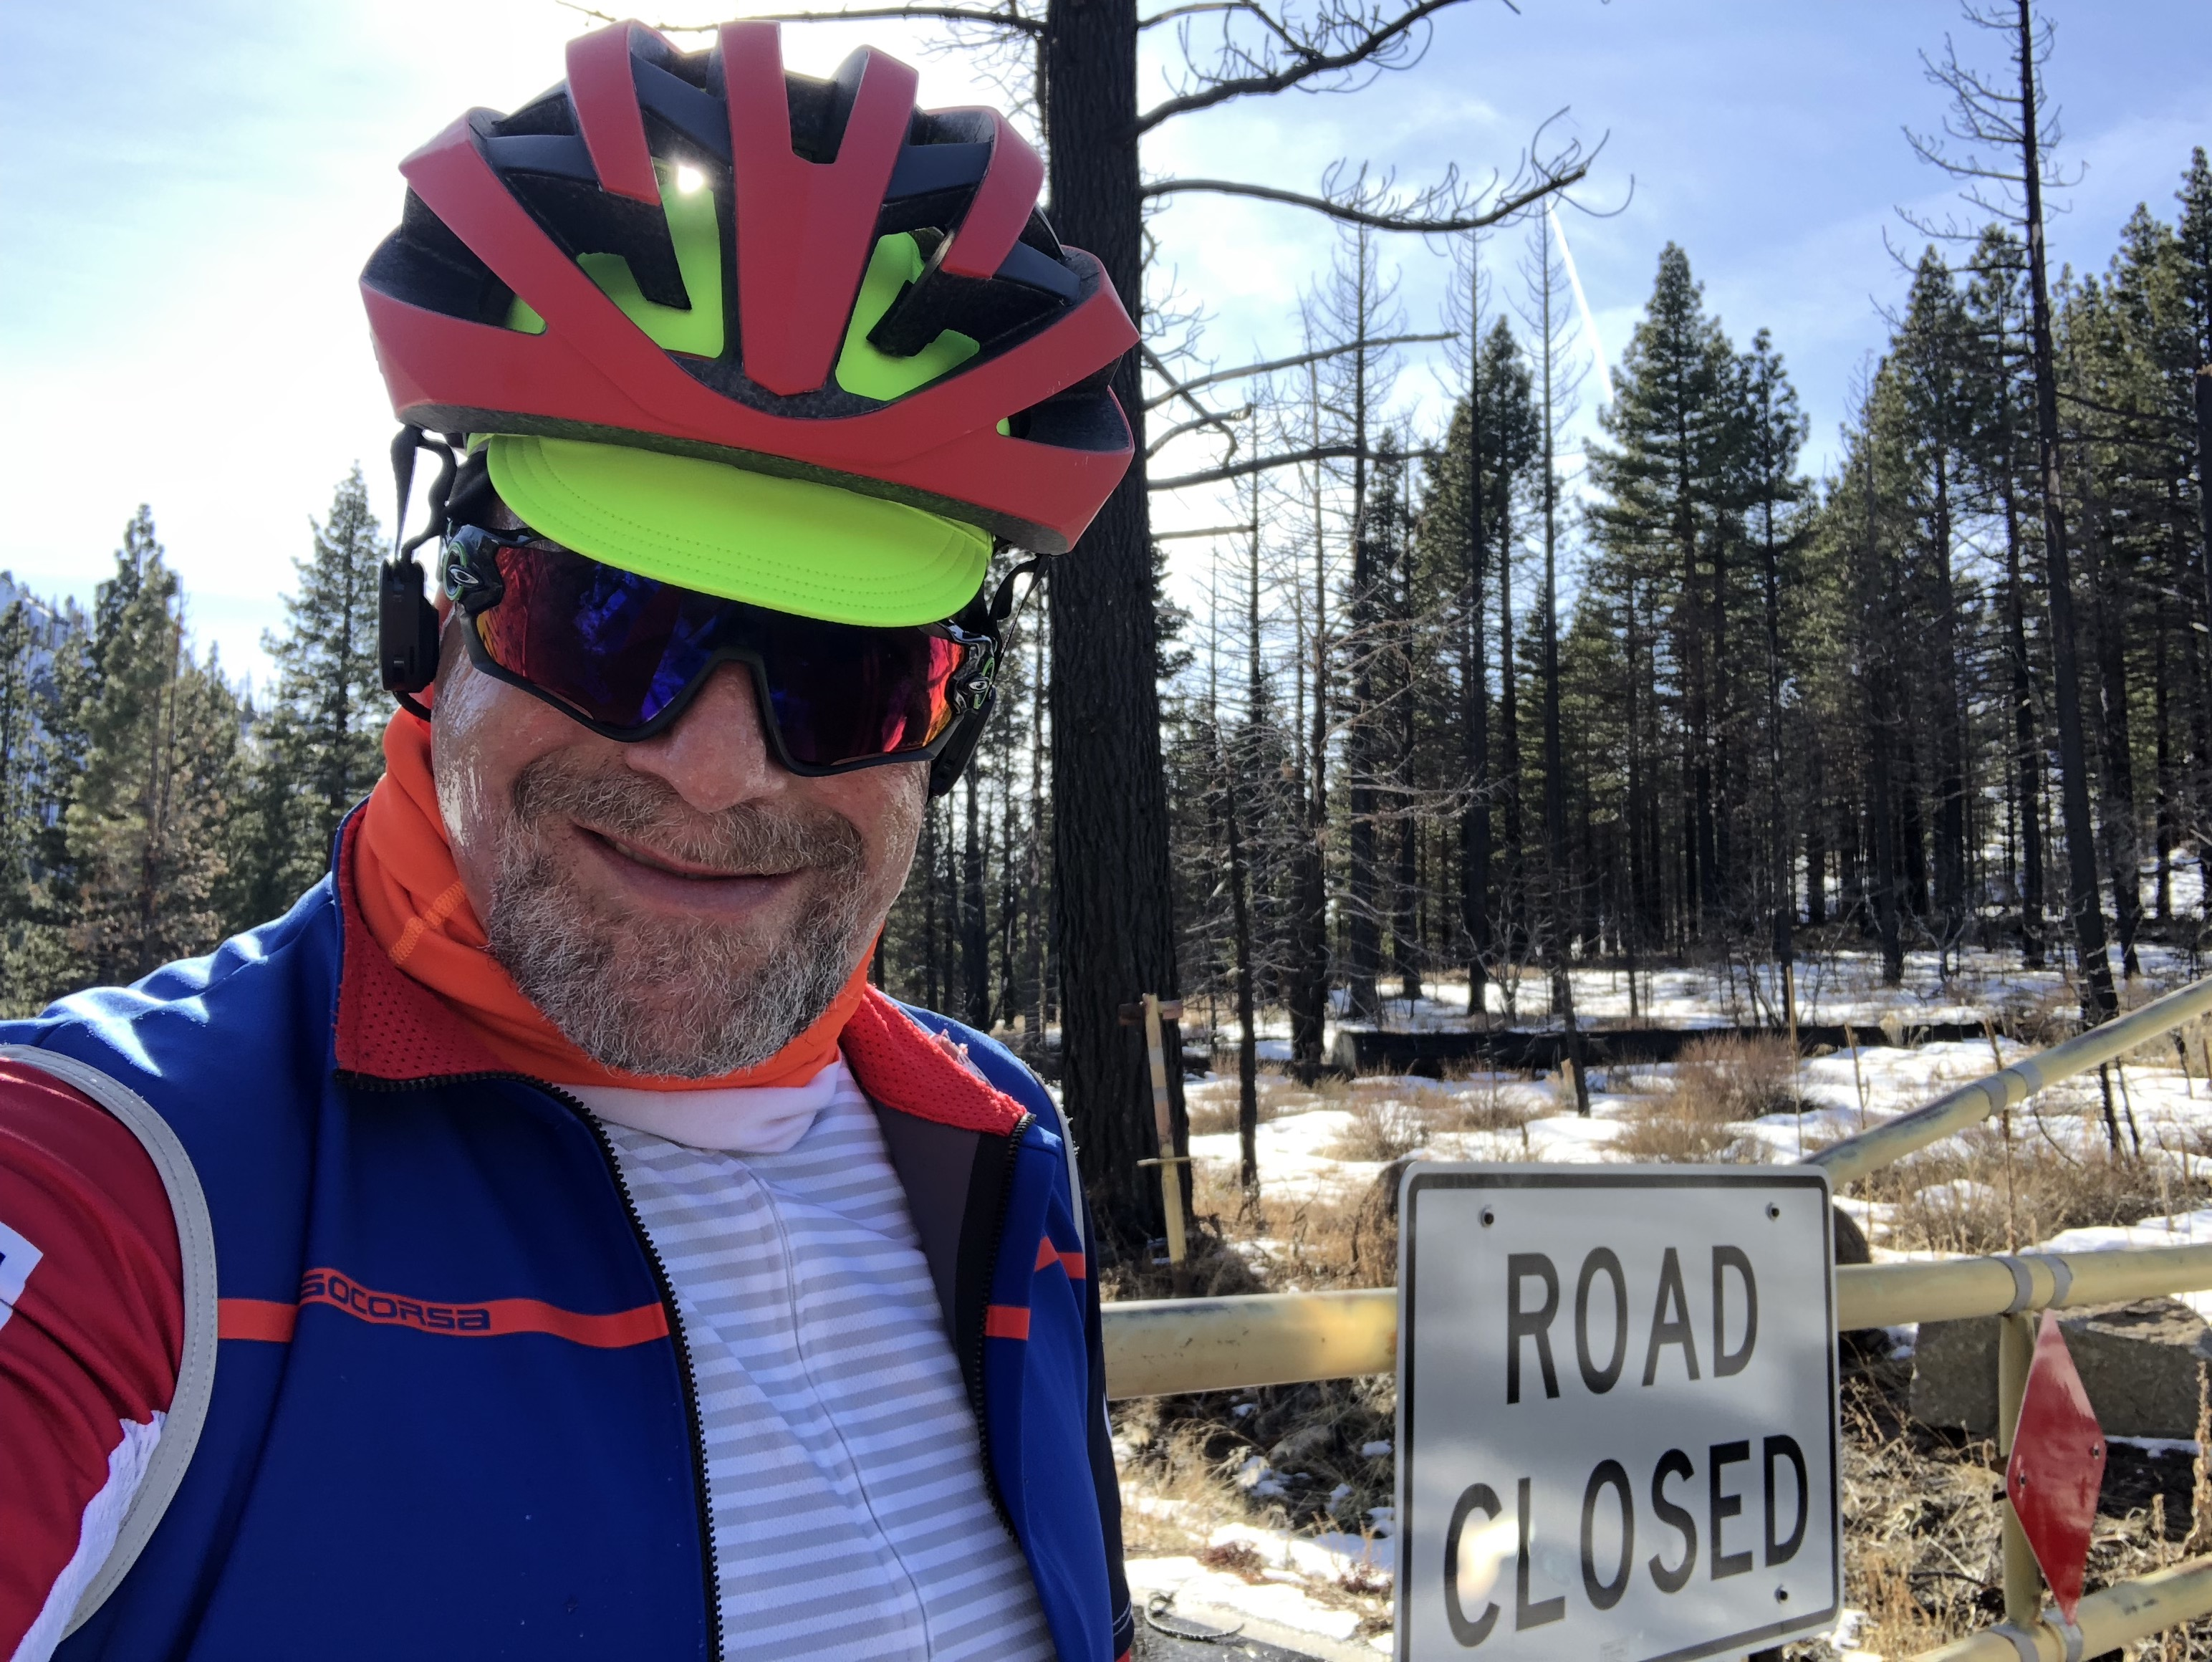 California Alps Cycling – Page 2 – Let's Kick Some Passes